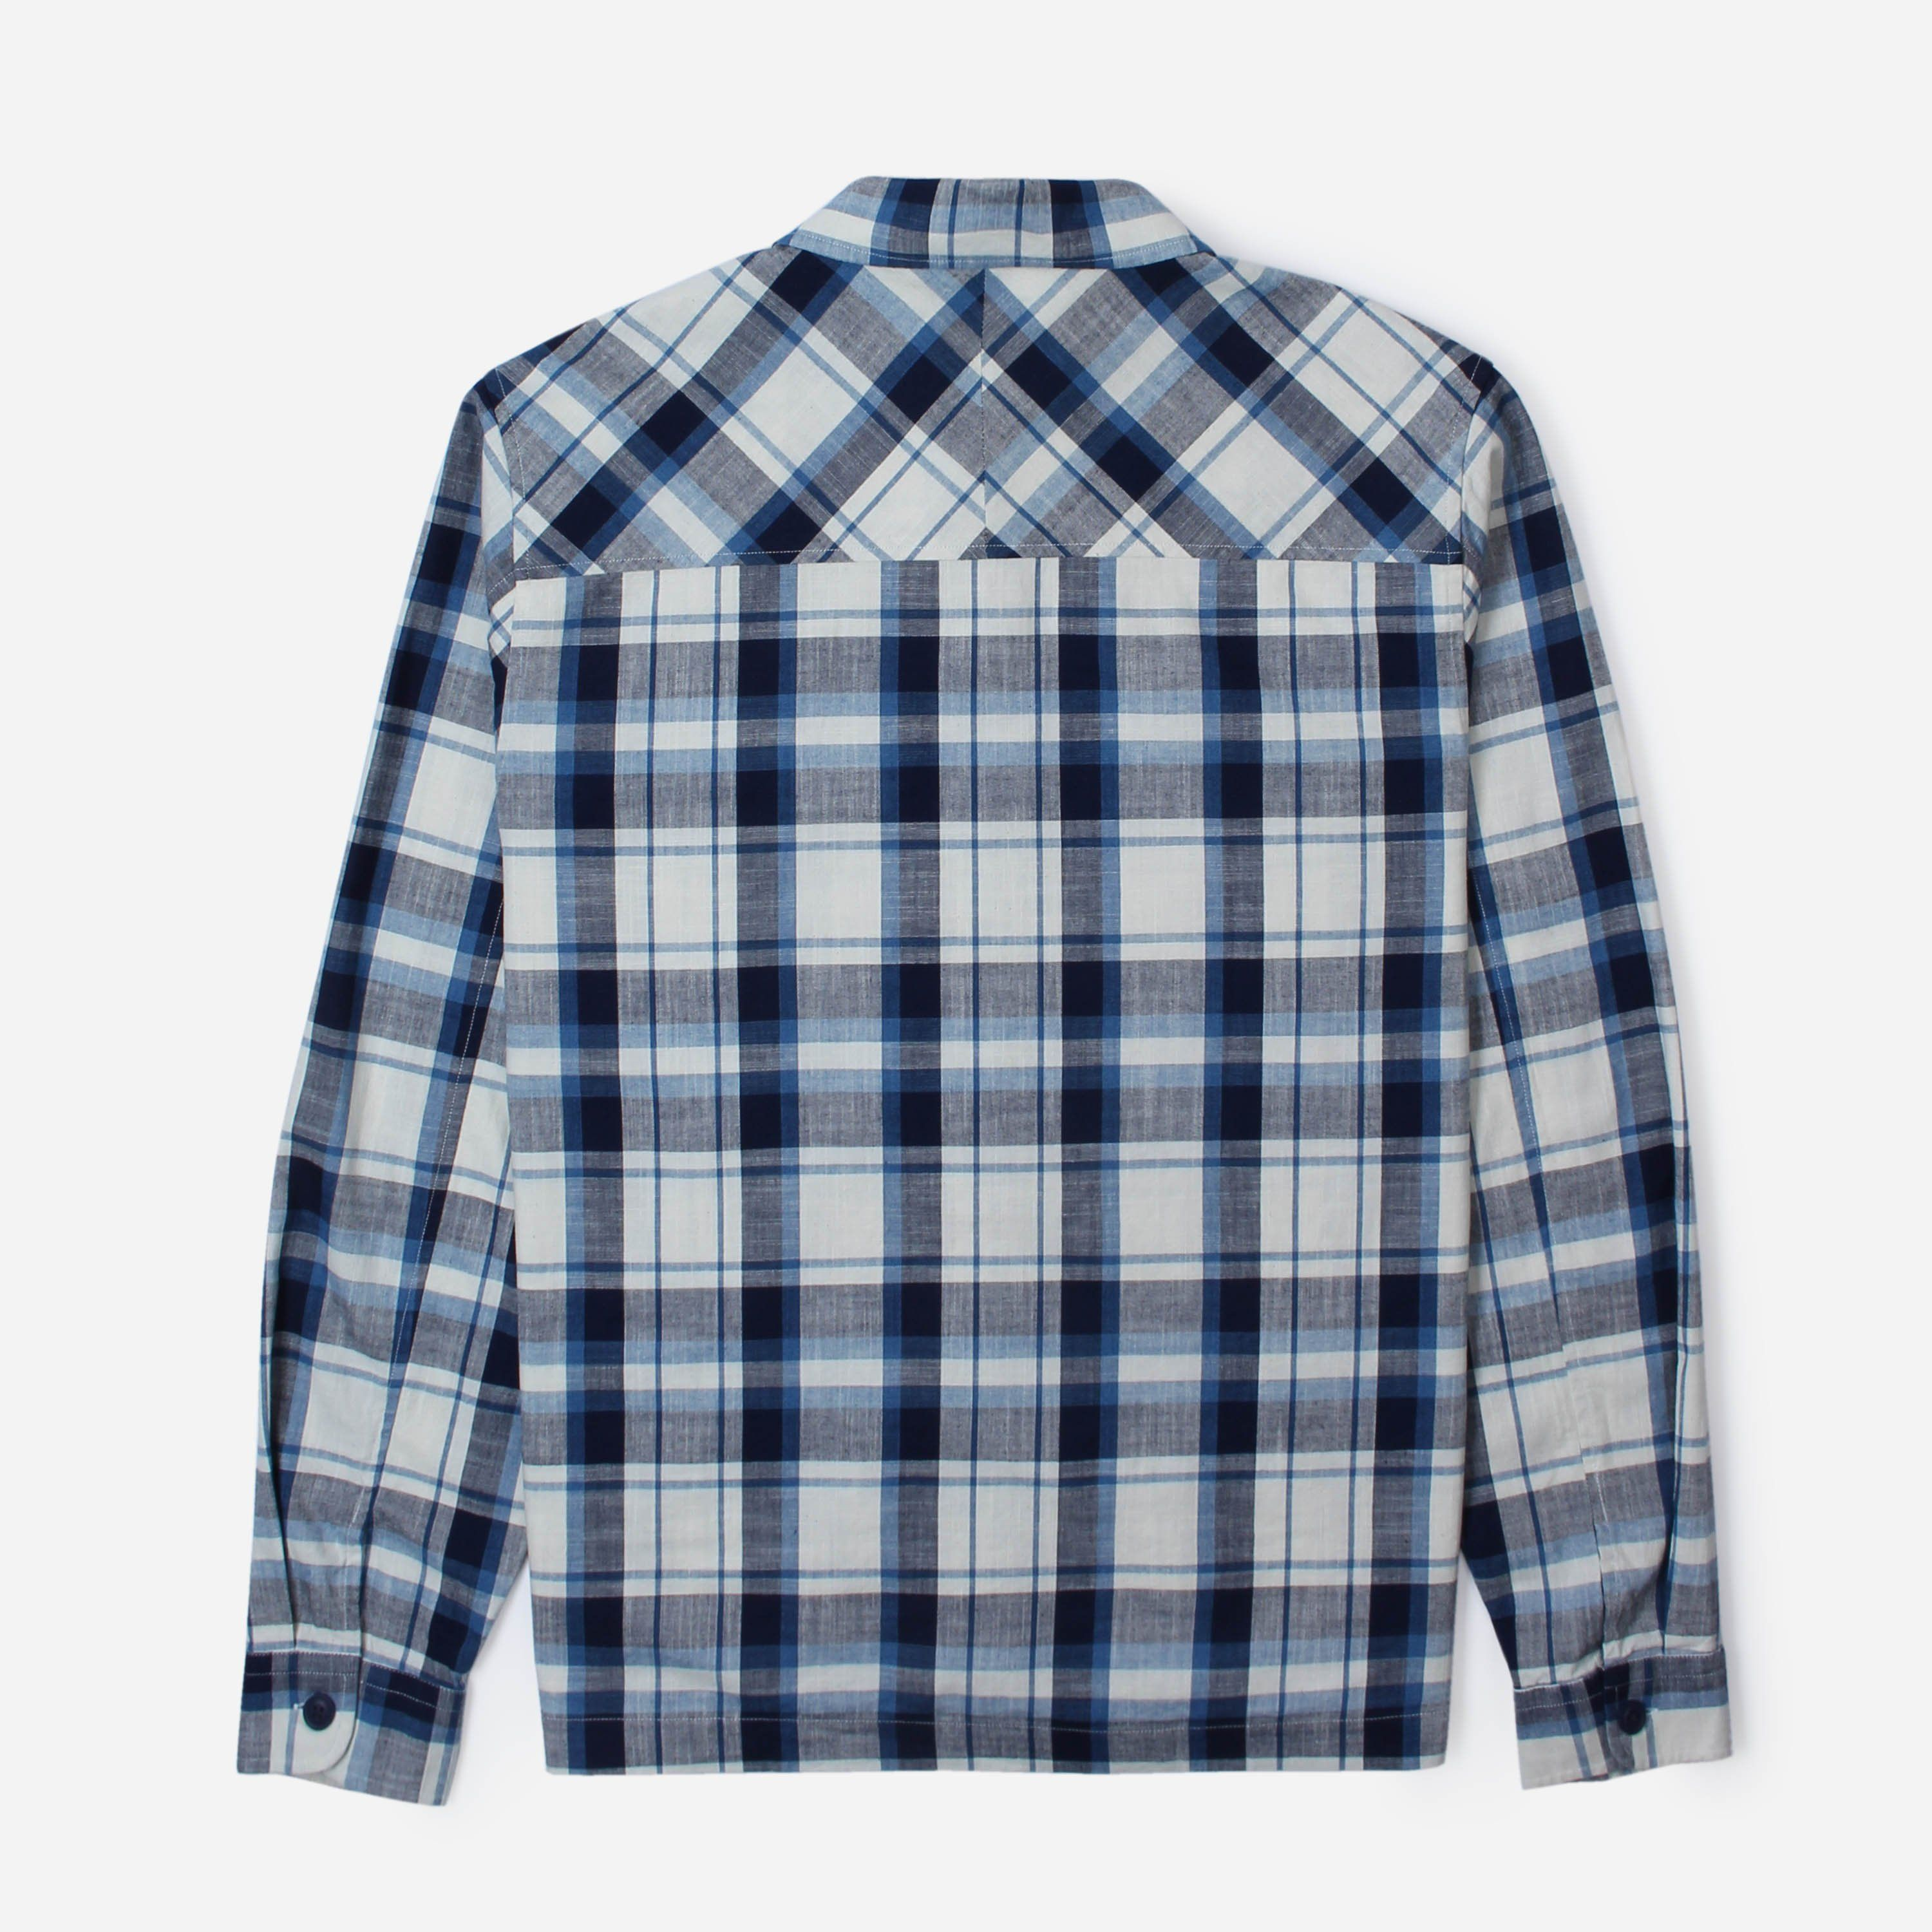 Penfield Spence Overshirt